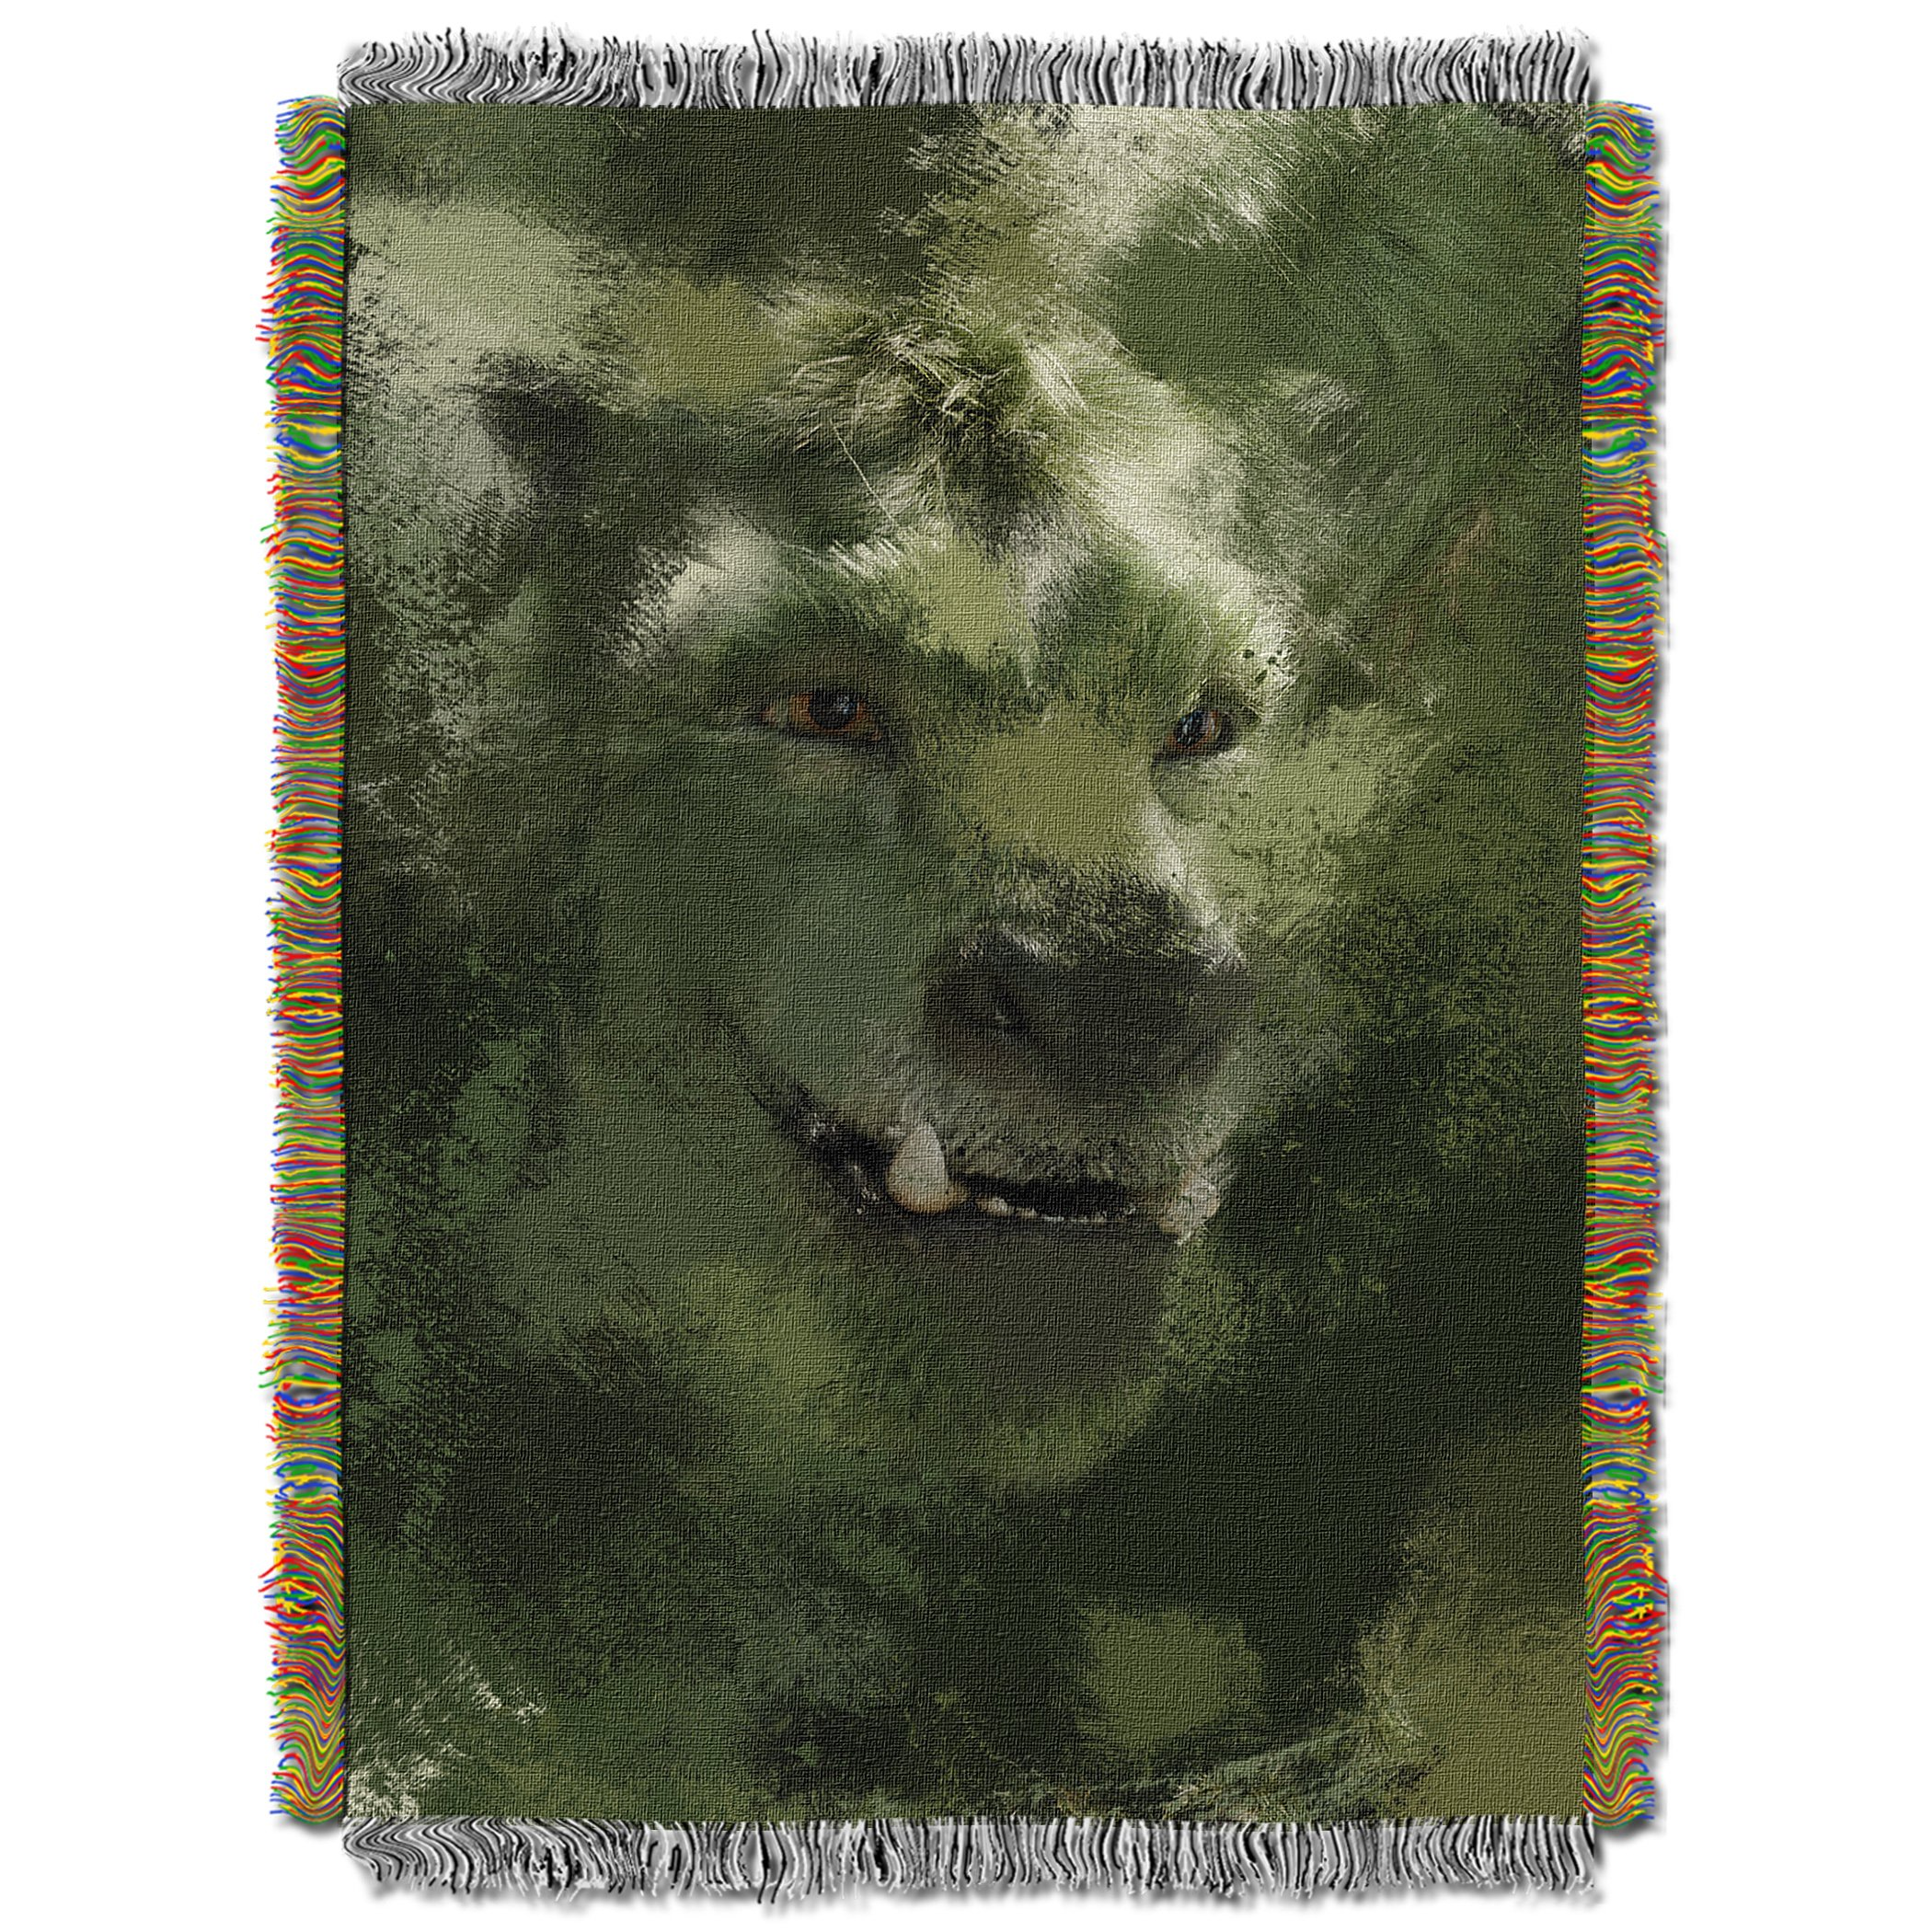 Disney's Pete's Dragon, ''Through the Green'' Woven Tapestry Throw Blanket, 48'' x 60'', Multi Color by The Northwest Company